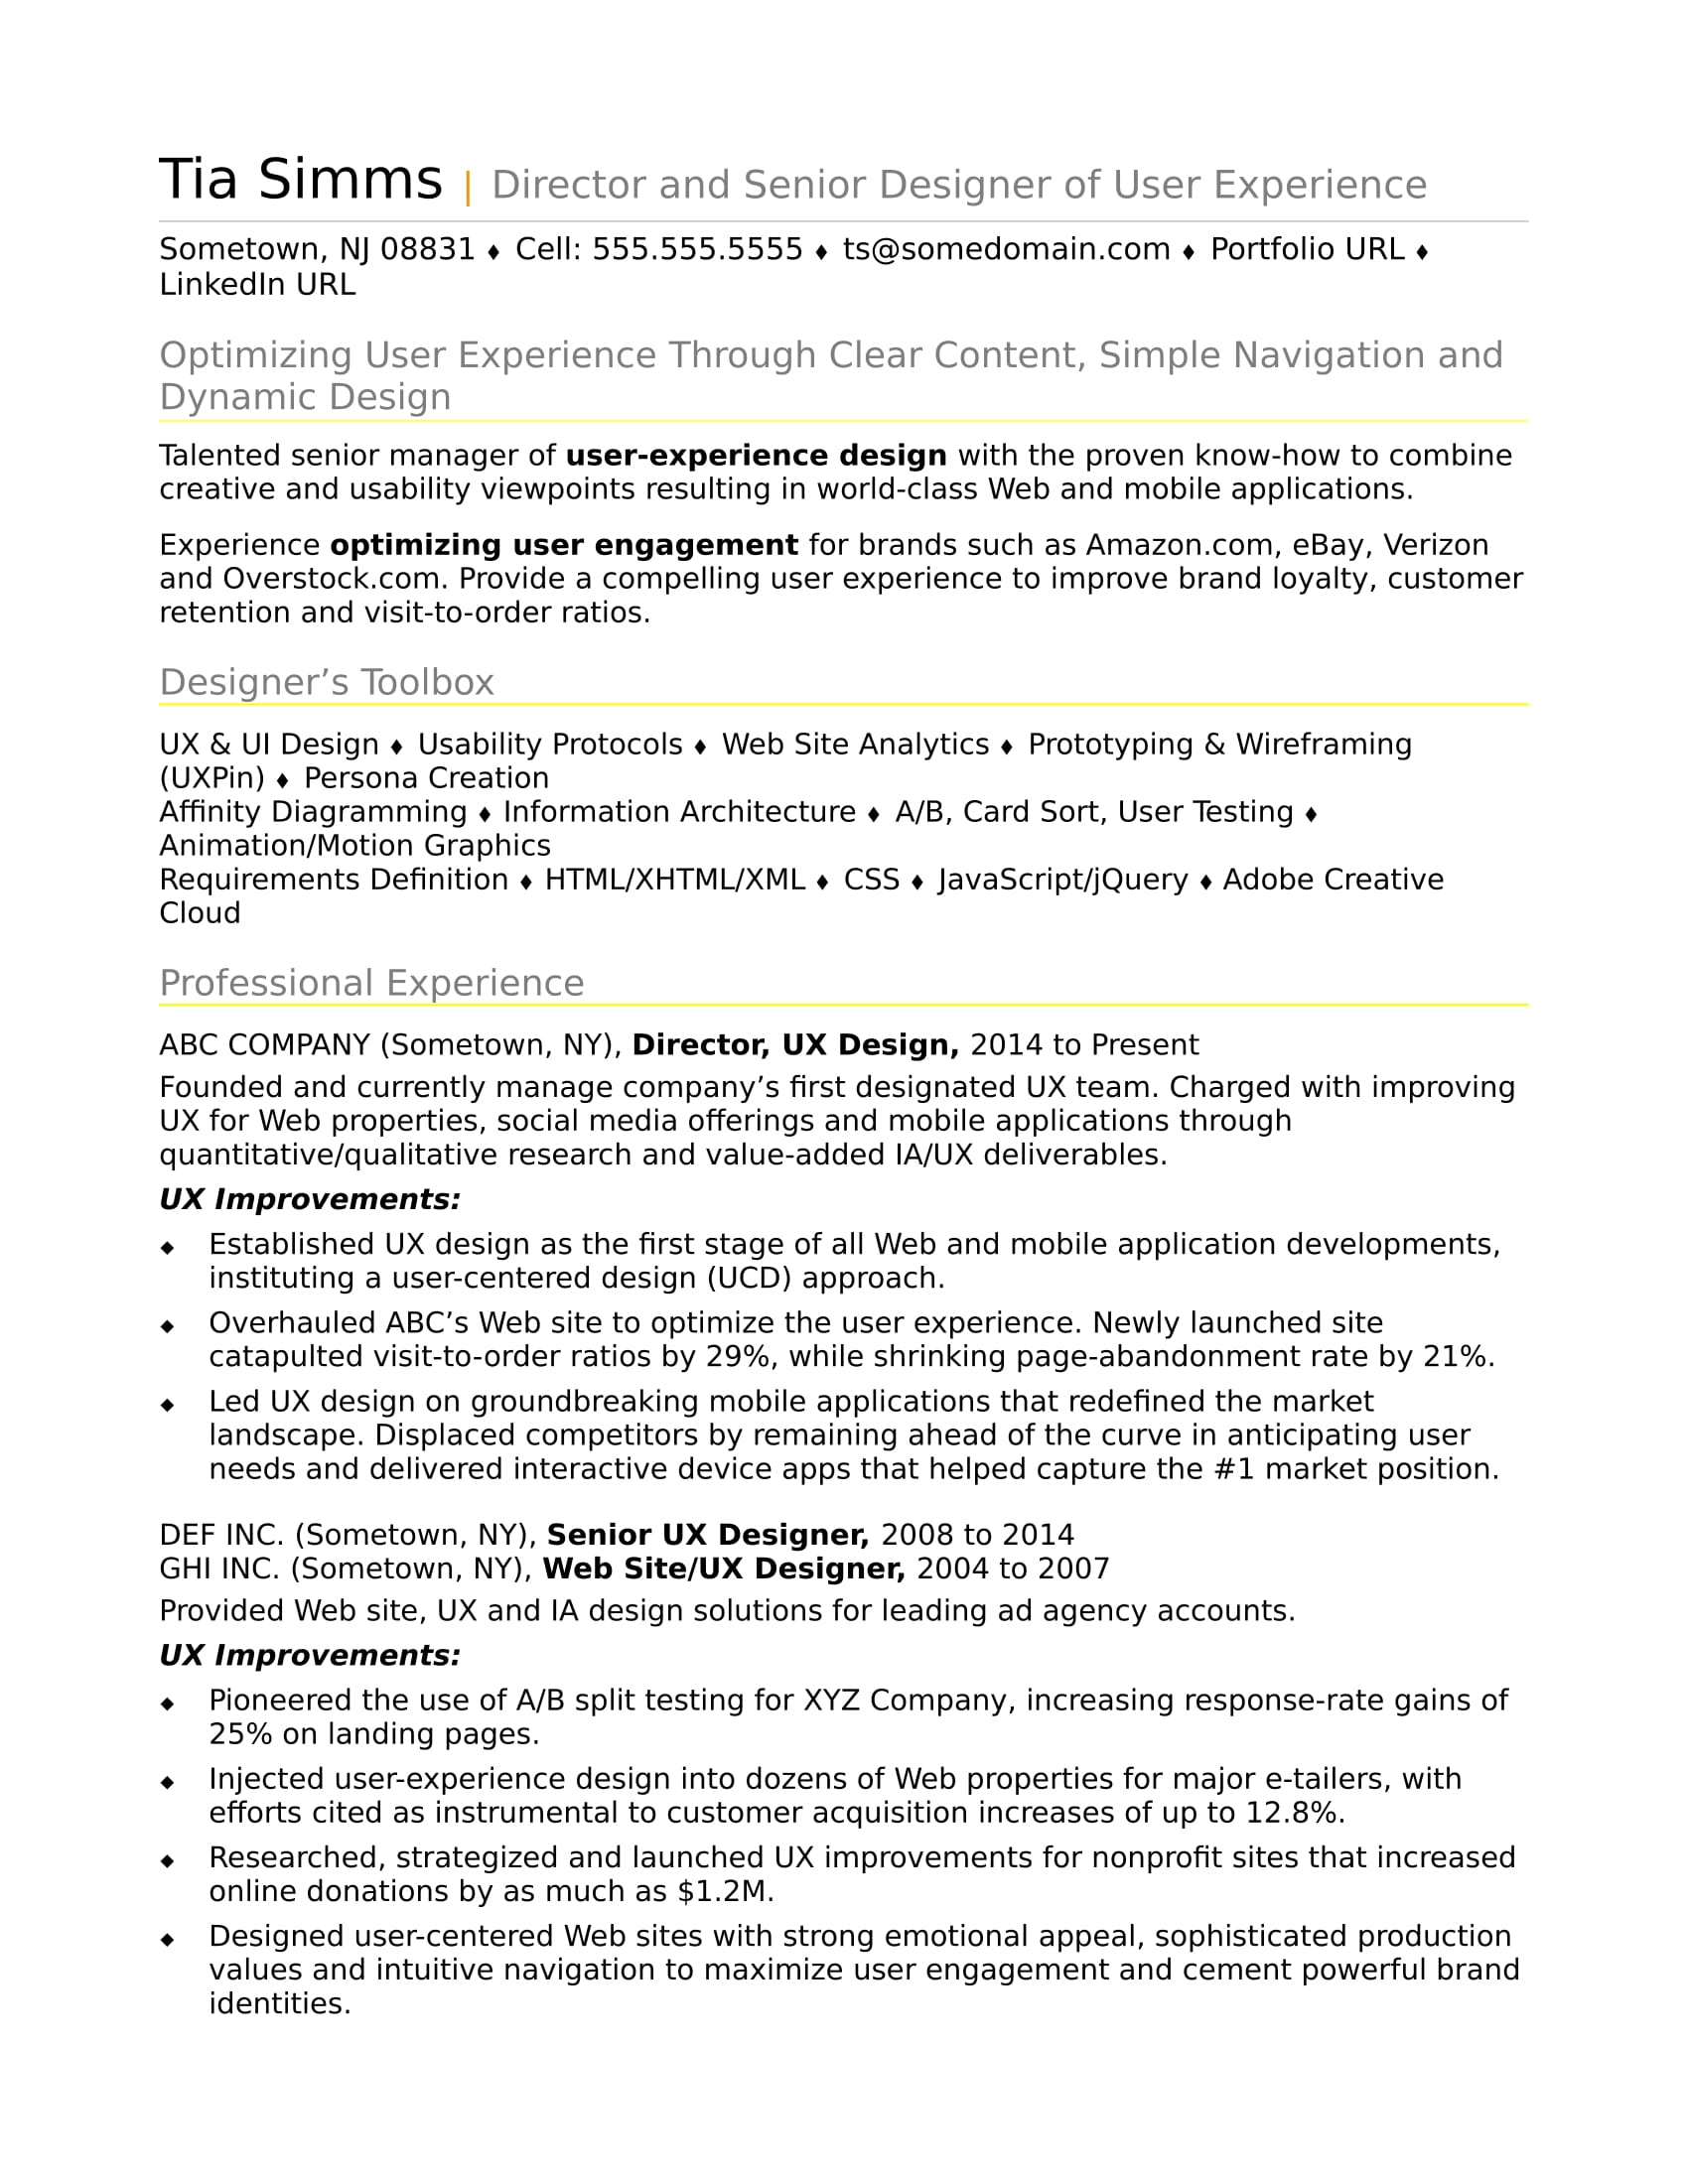 sample resume for an experienced ux designer - Ux Designer Resume